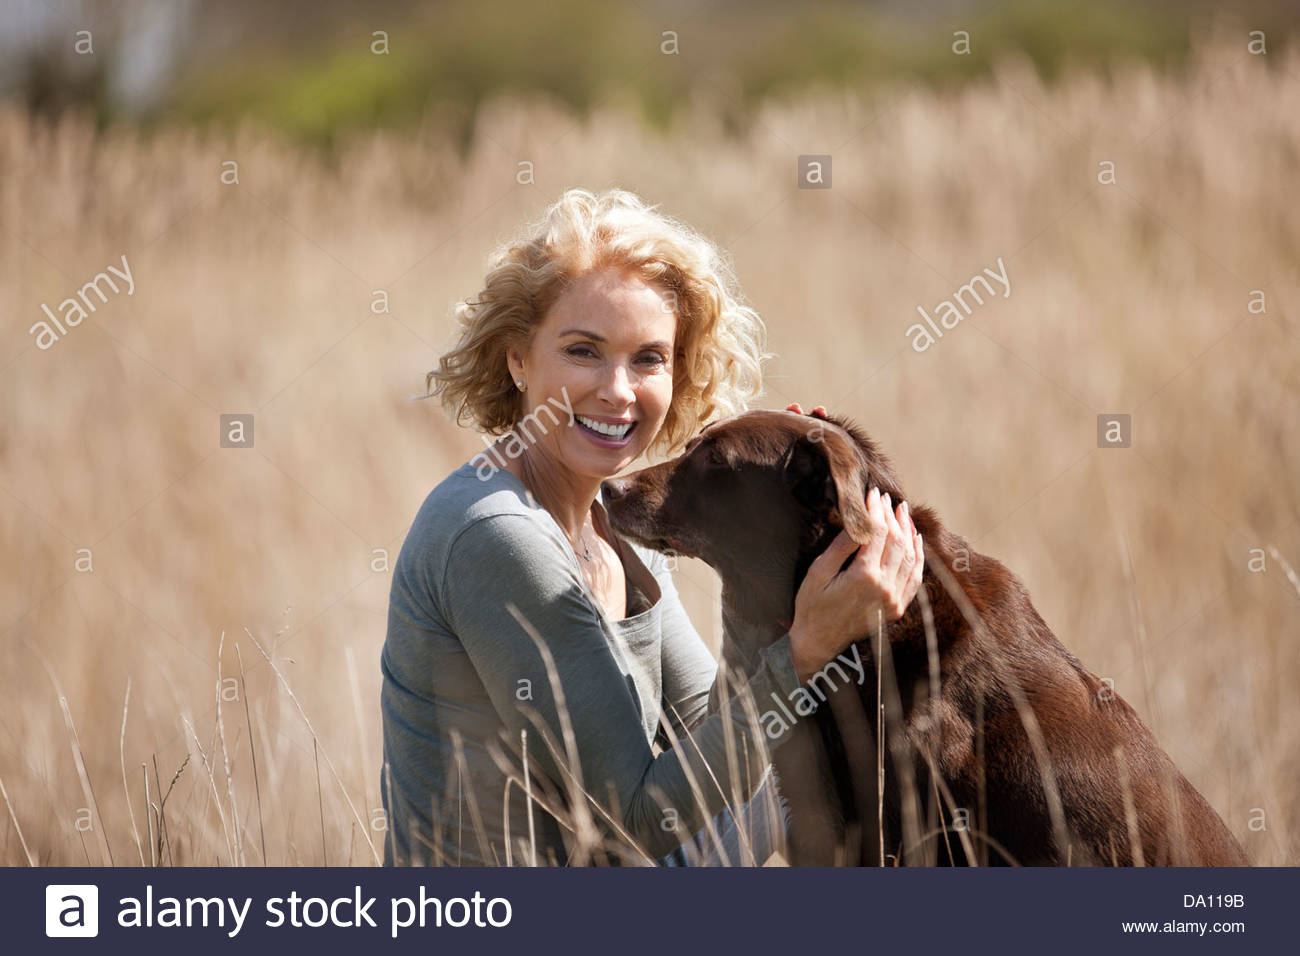 A mature woman sitting on the grass stroking her dog, smiling Stock Photo